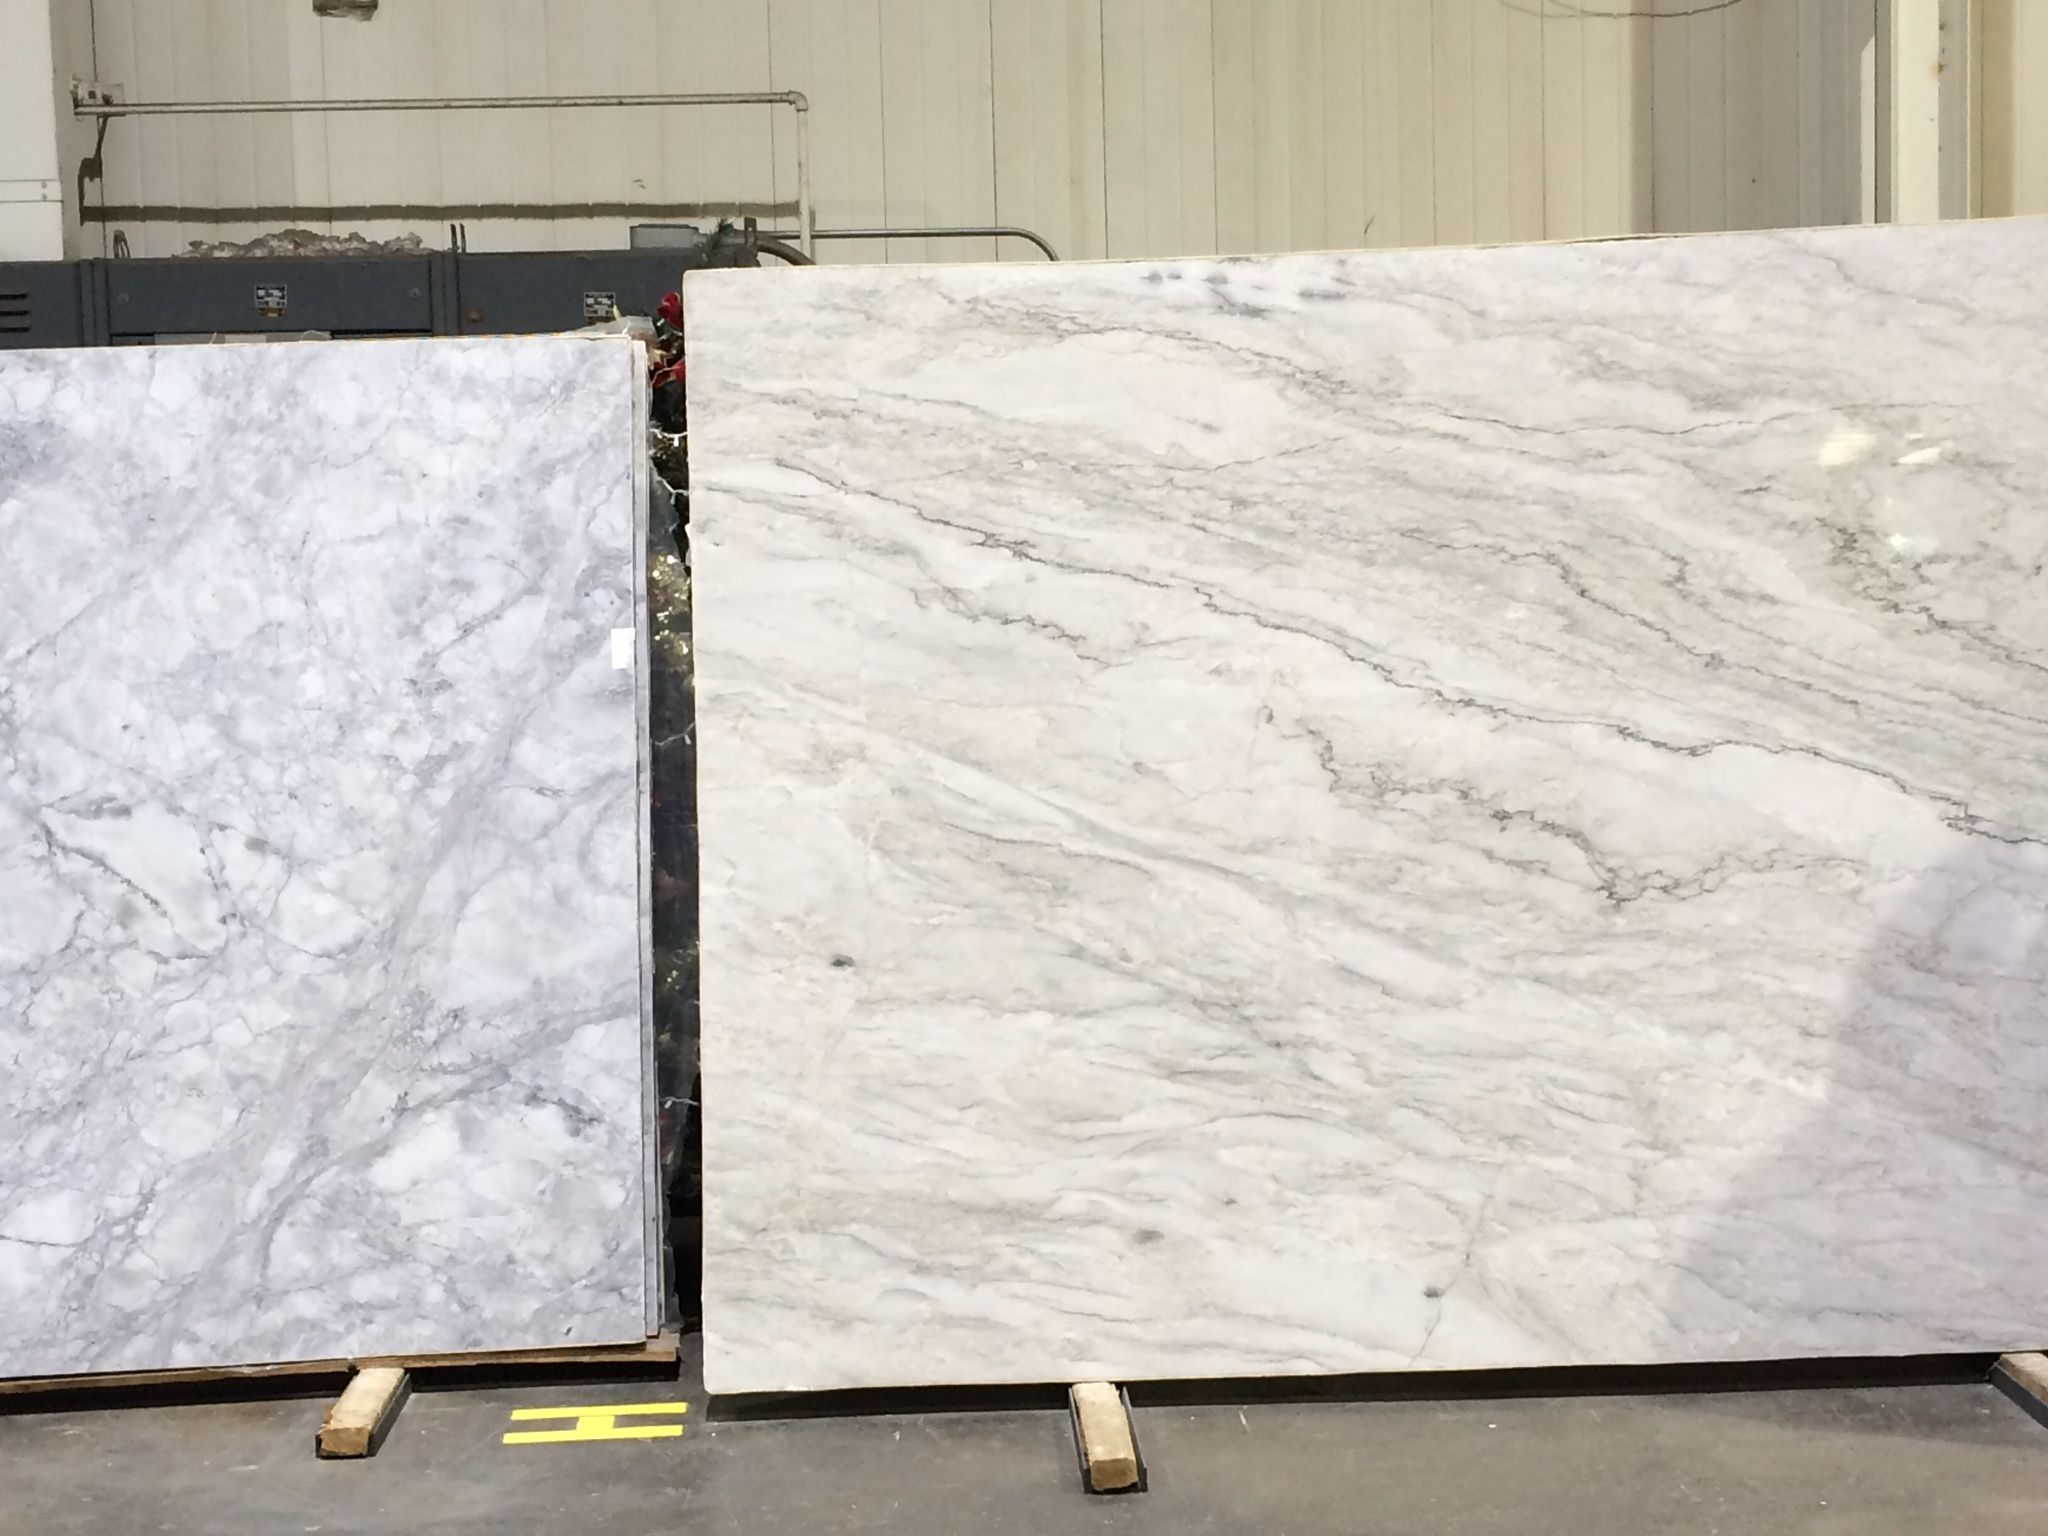 Super White Quartzite Left Vs Pearl Right Cooler Warmer Whichever You Prefer